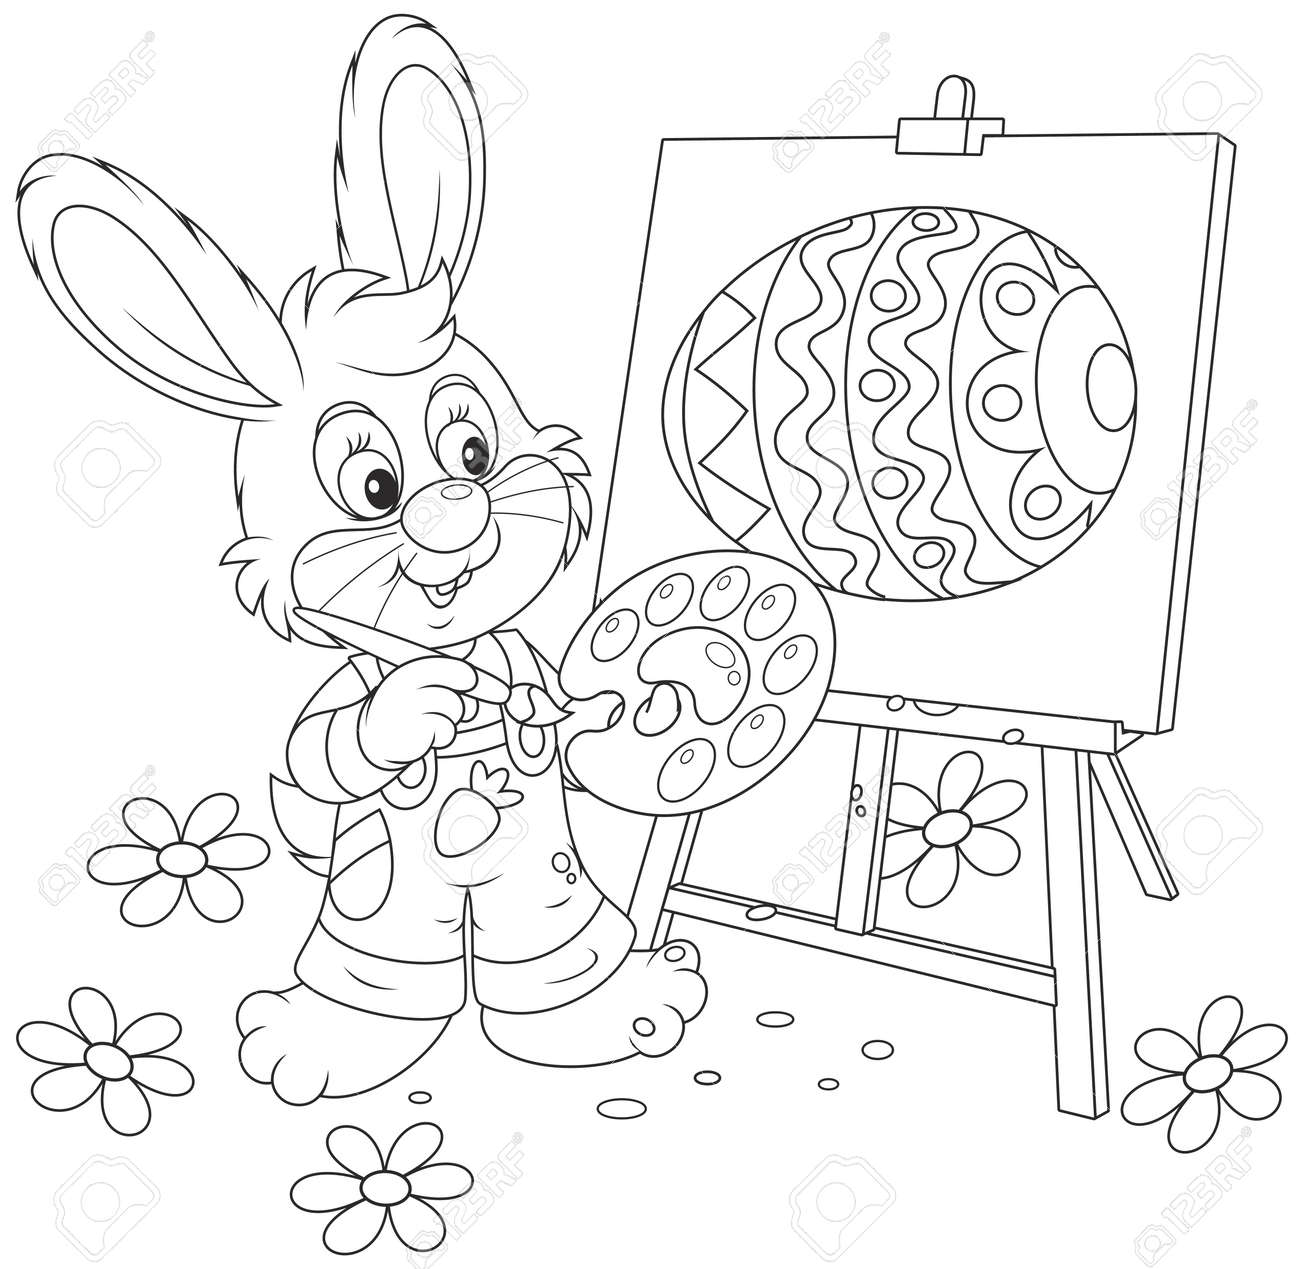 Easter Bunny painter - 36500150